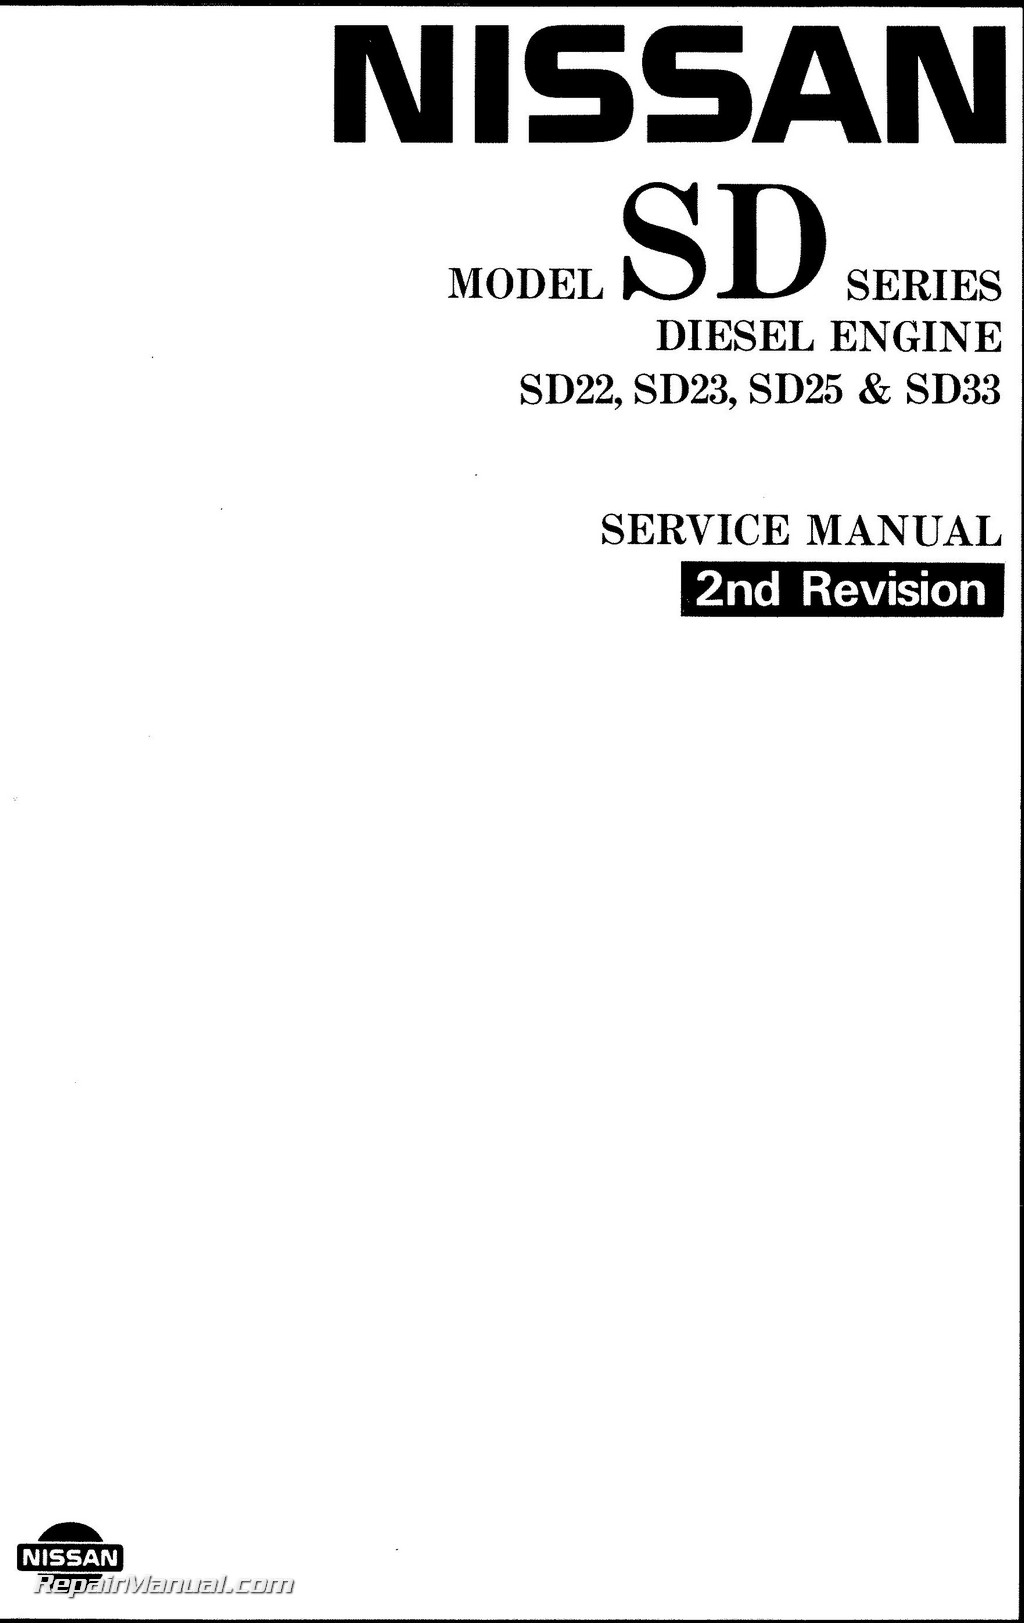 Nissan Sentra Service Manual: Basic inspection